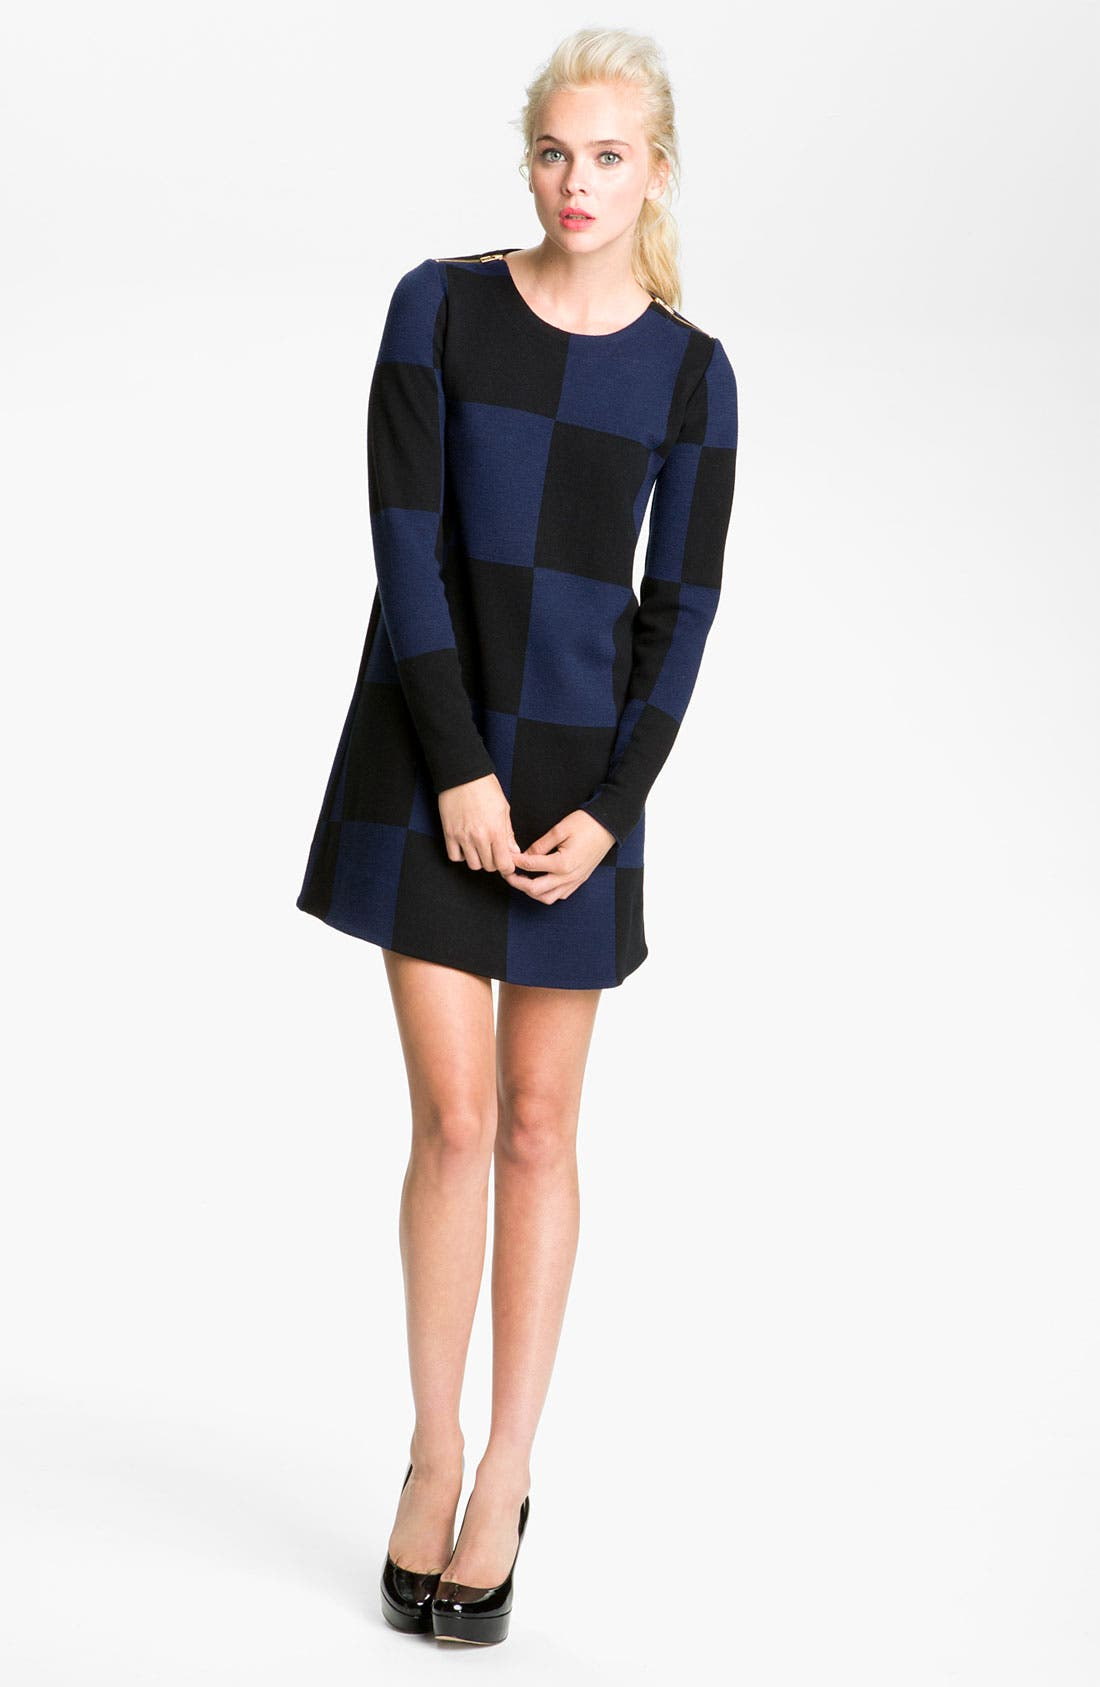 Alternate Image 1 Selected - MARC BY MARC JACOBS Checkered Jacquard Mini Dress